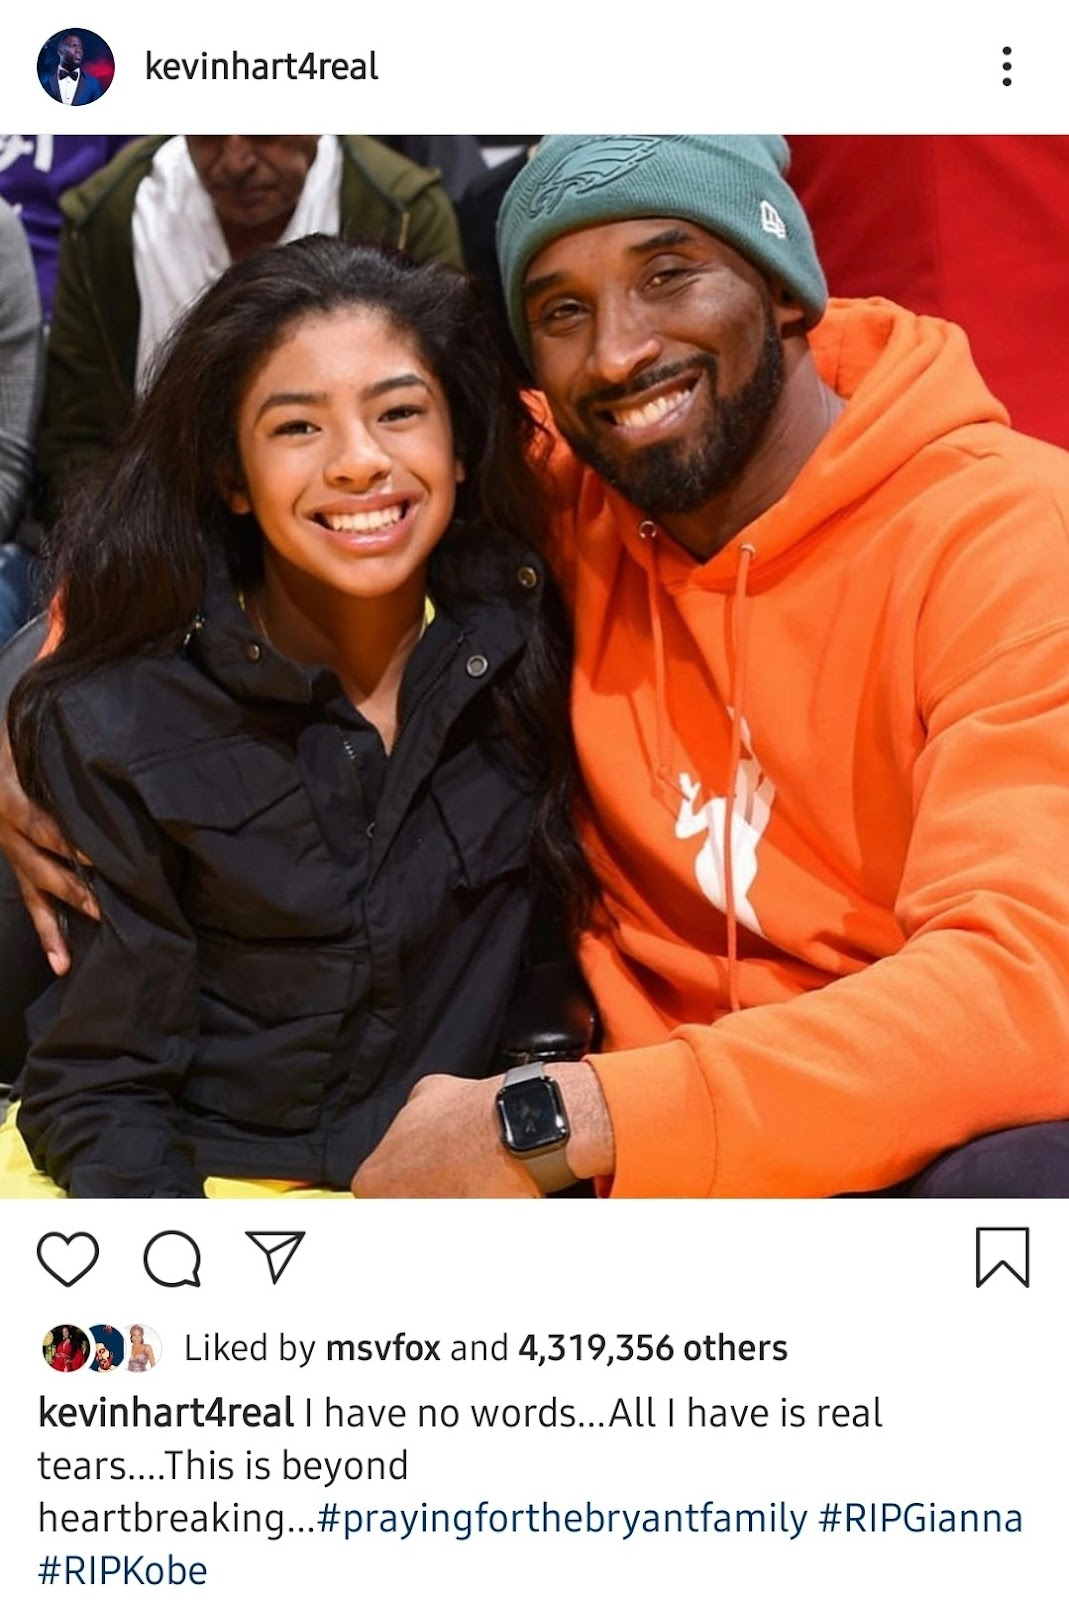 kevinhart4real Liked by msvfox and 4,319,356 others kevinhart4real I have no words...All I have is real tears....This is beyond heartbreaking...#prayingforthebryantfamily #RIPGianna #RIPKobe